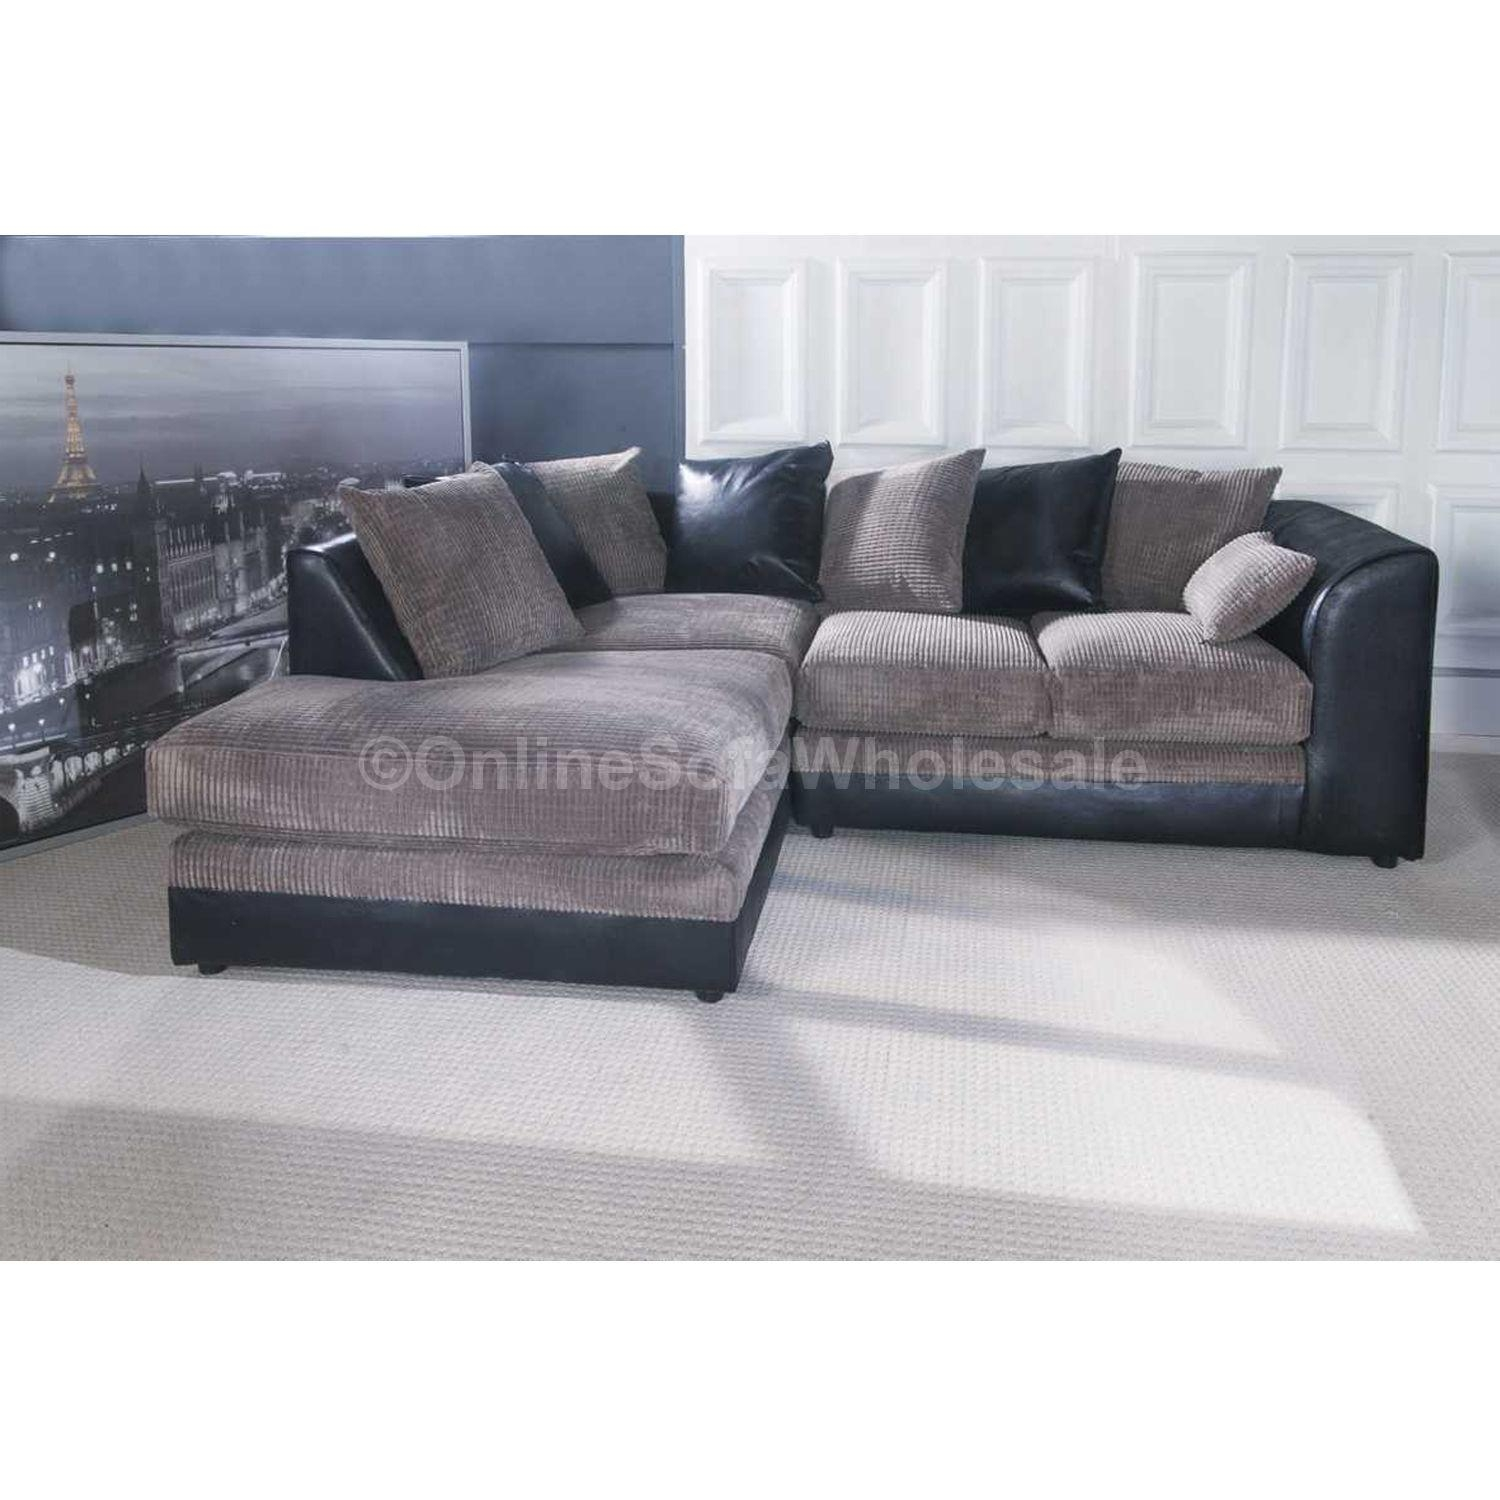 small grey sofa next forest green grimsby sofascore 20 best sofas ideas